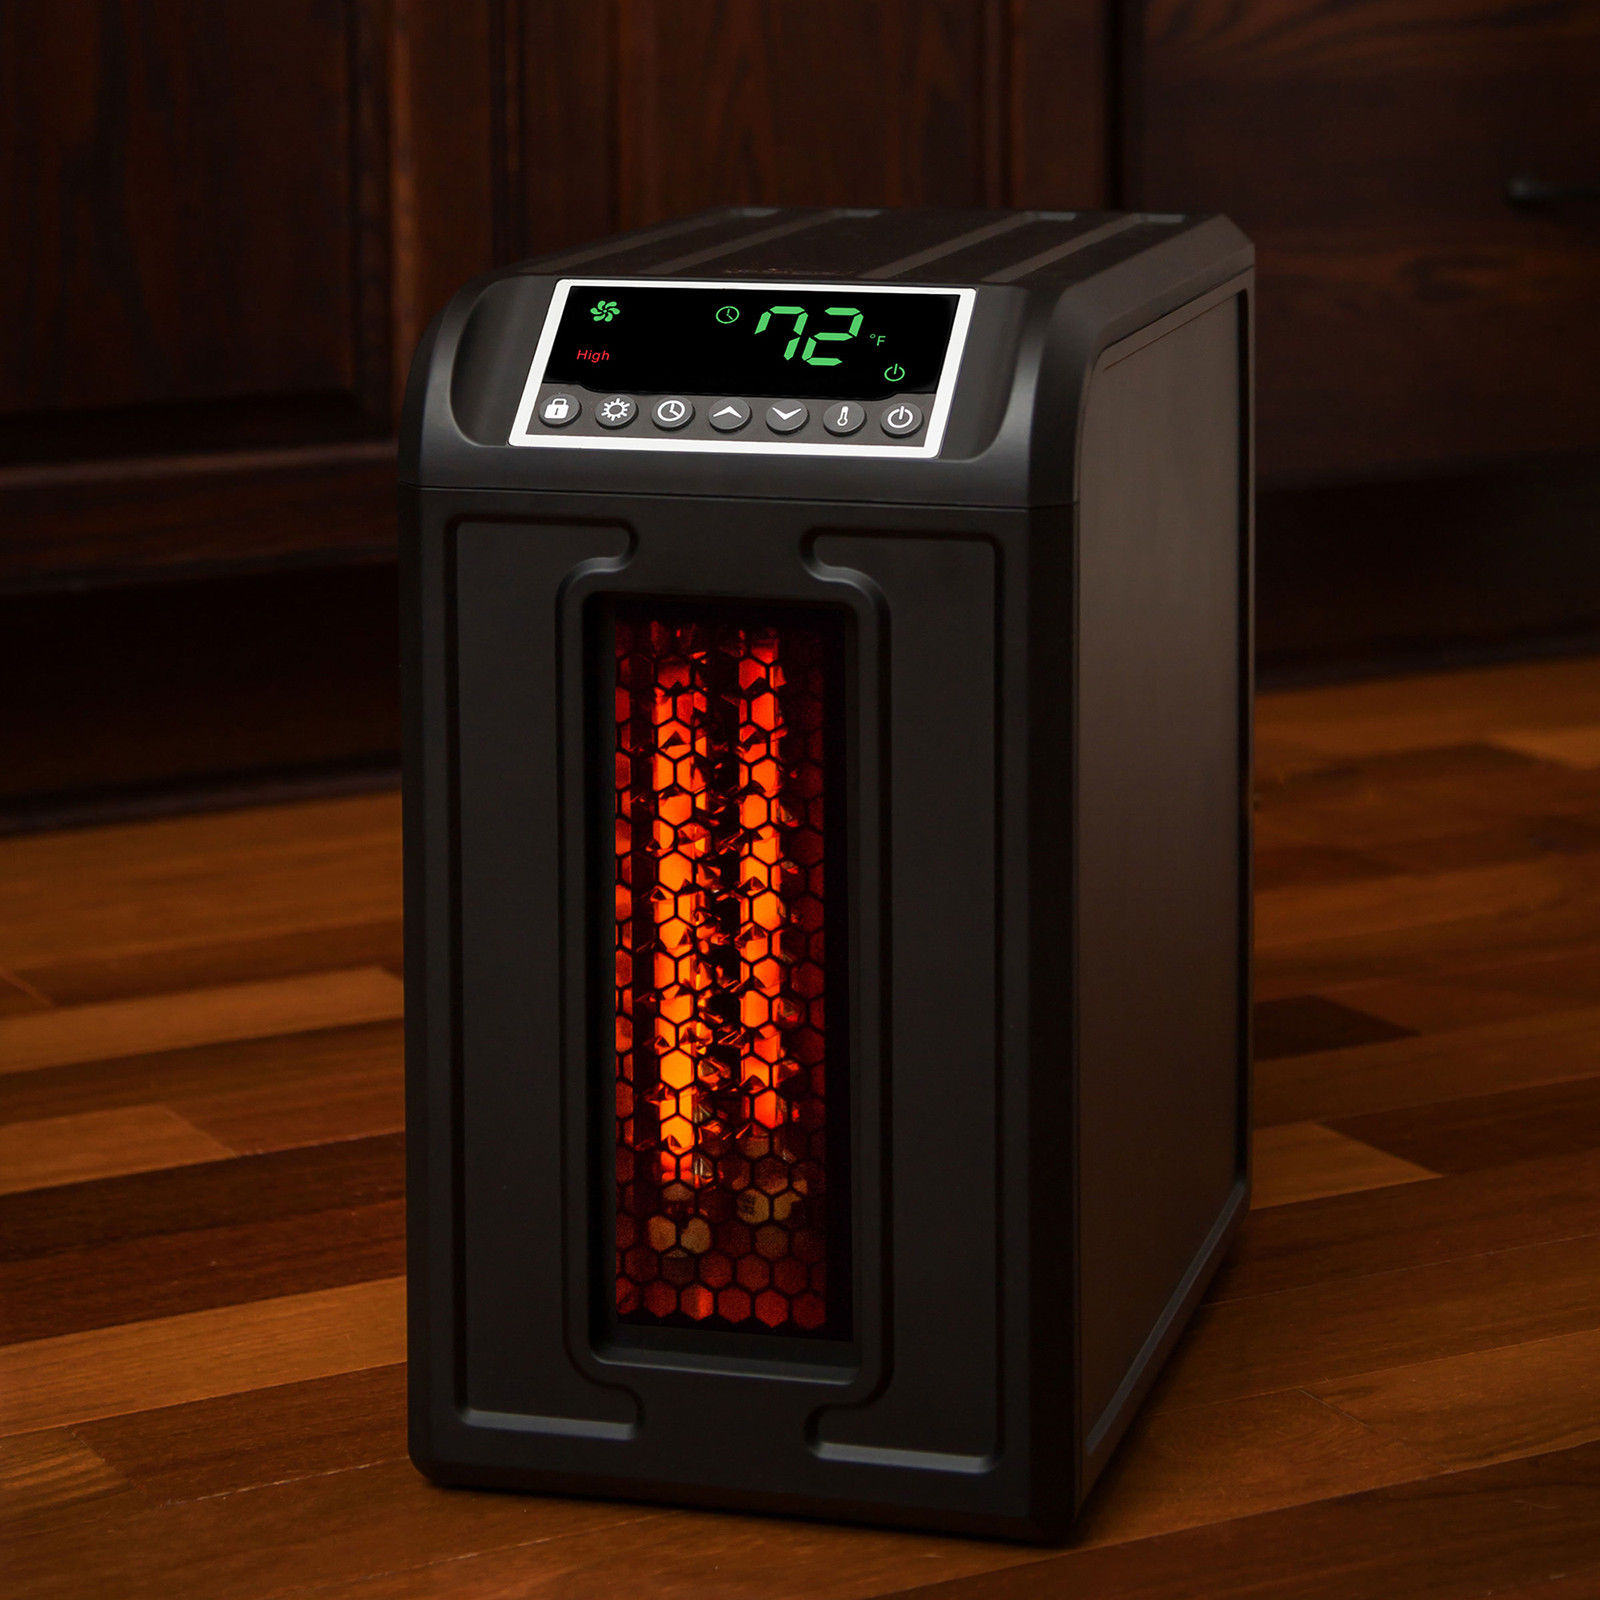 3 Element 1500w Infrared Space Heater 5118 Btu